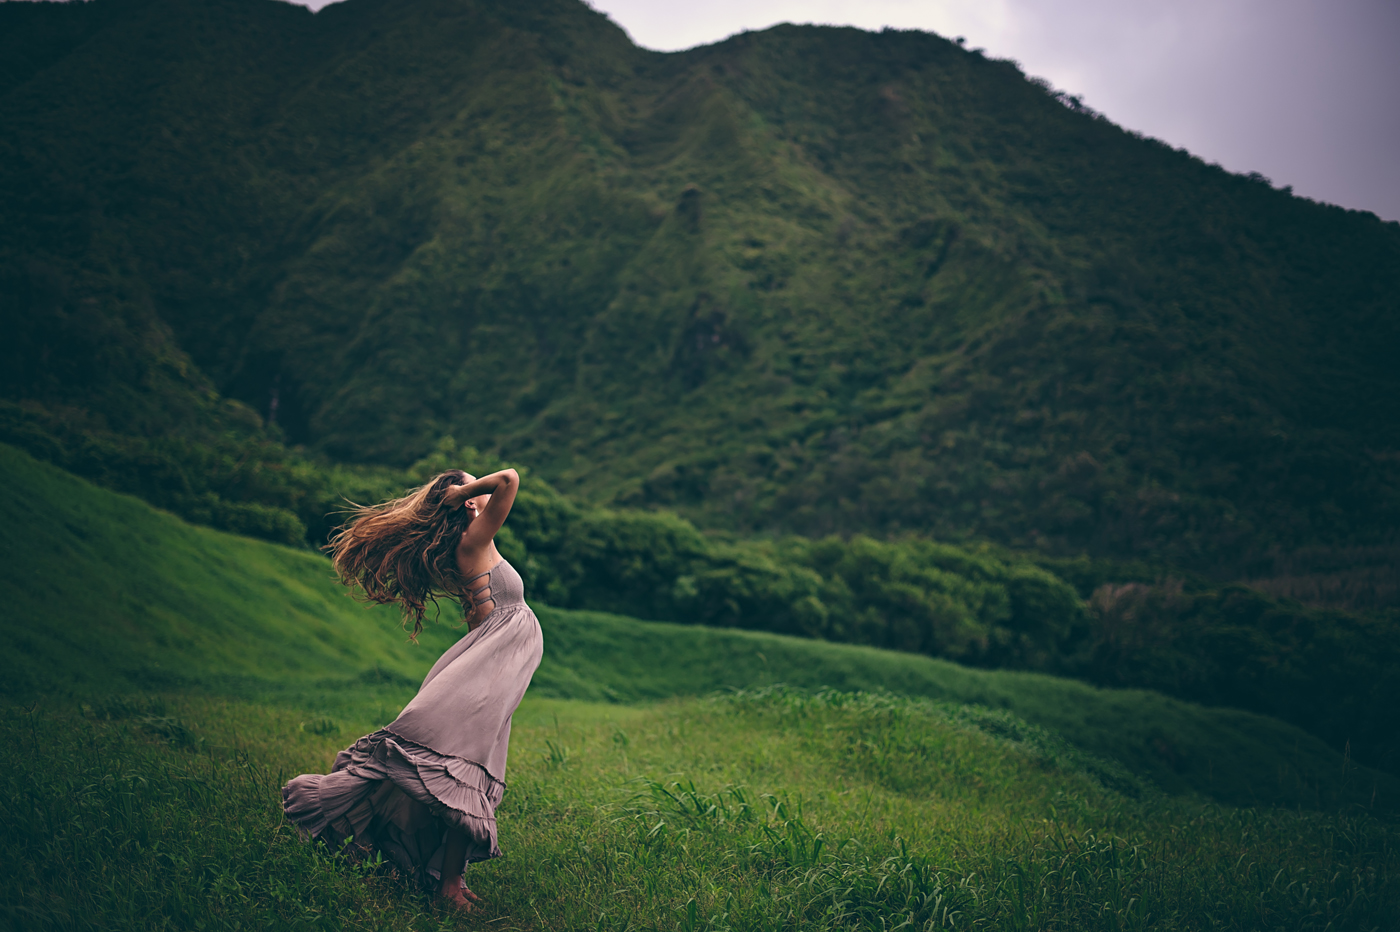 'Barefoot & Pregnant in the Muddy Mountains of Hawaii' by Stormy Solis